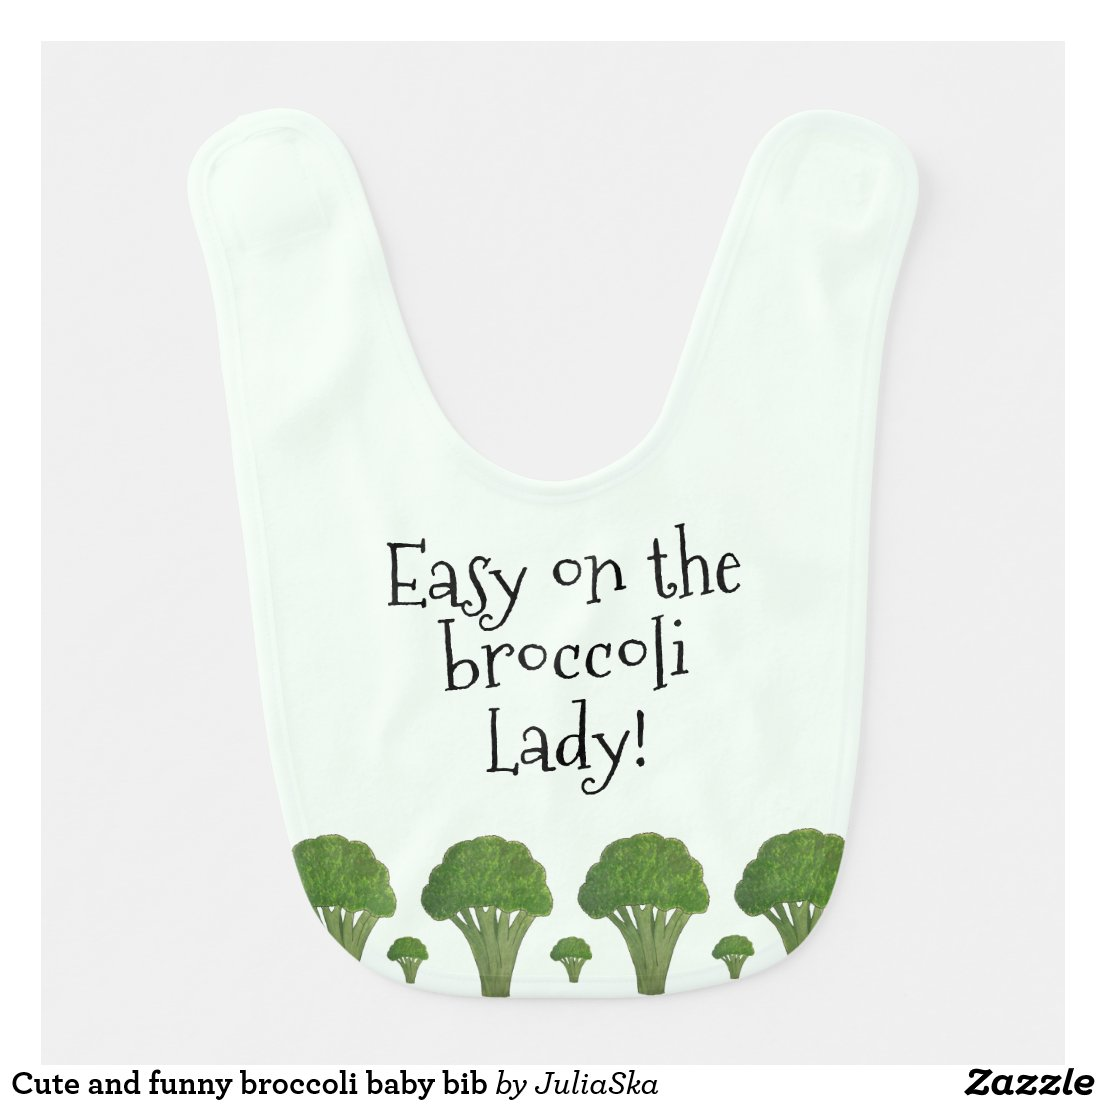 Cute and funny broccoli baby bib